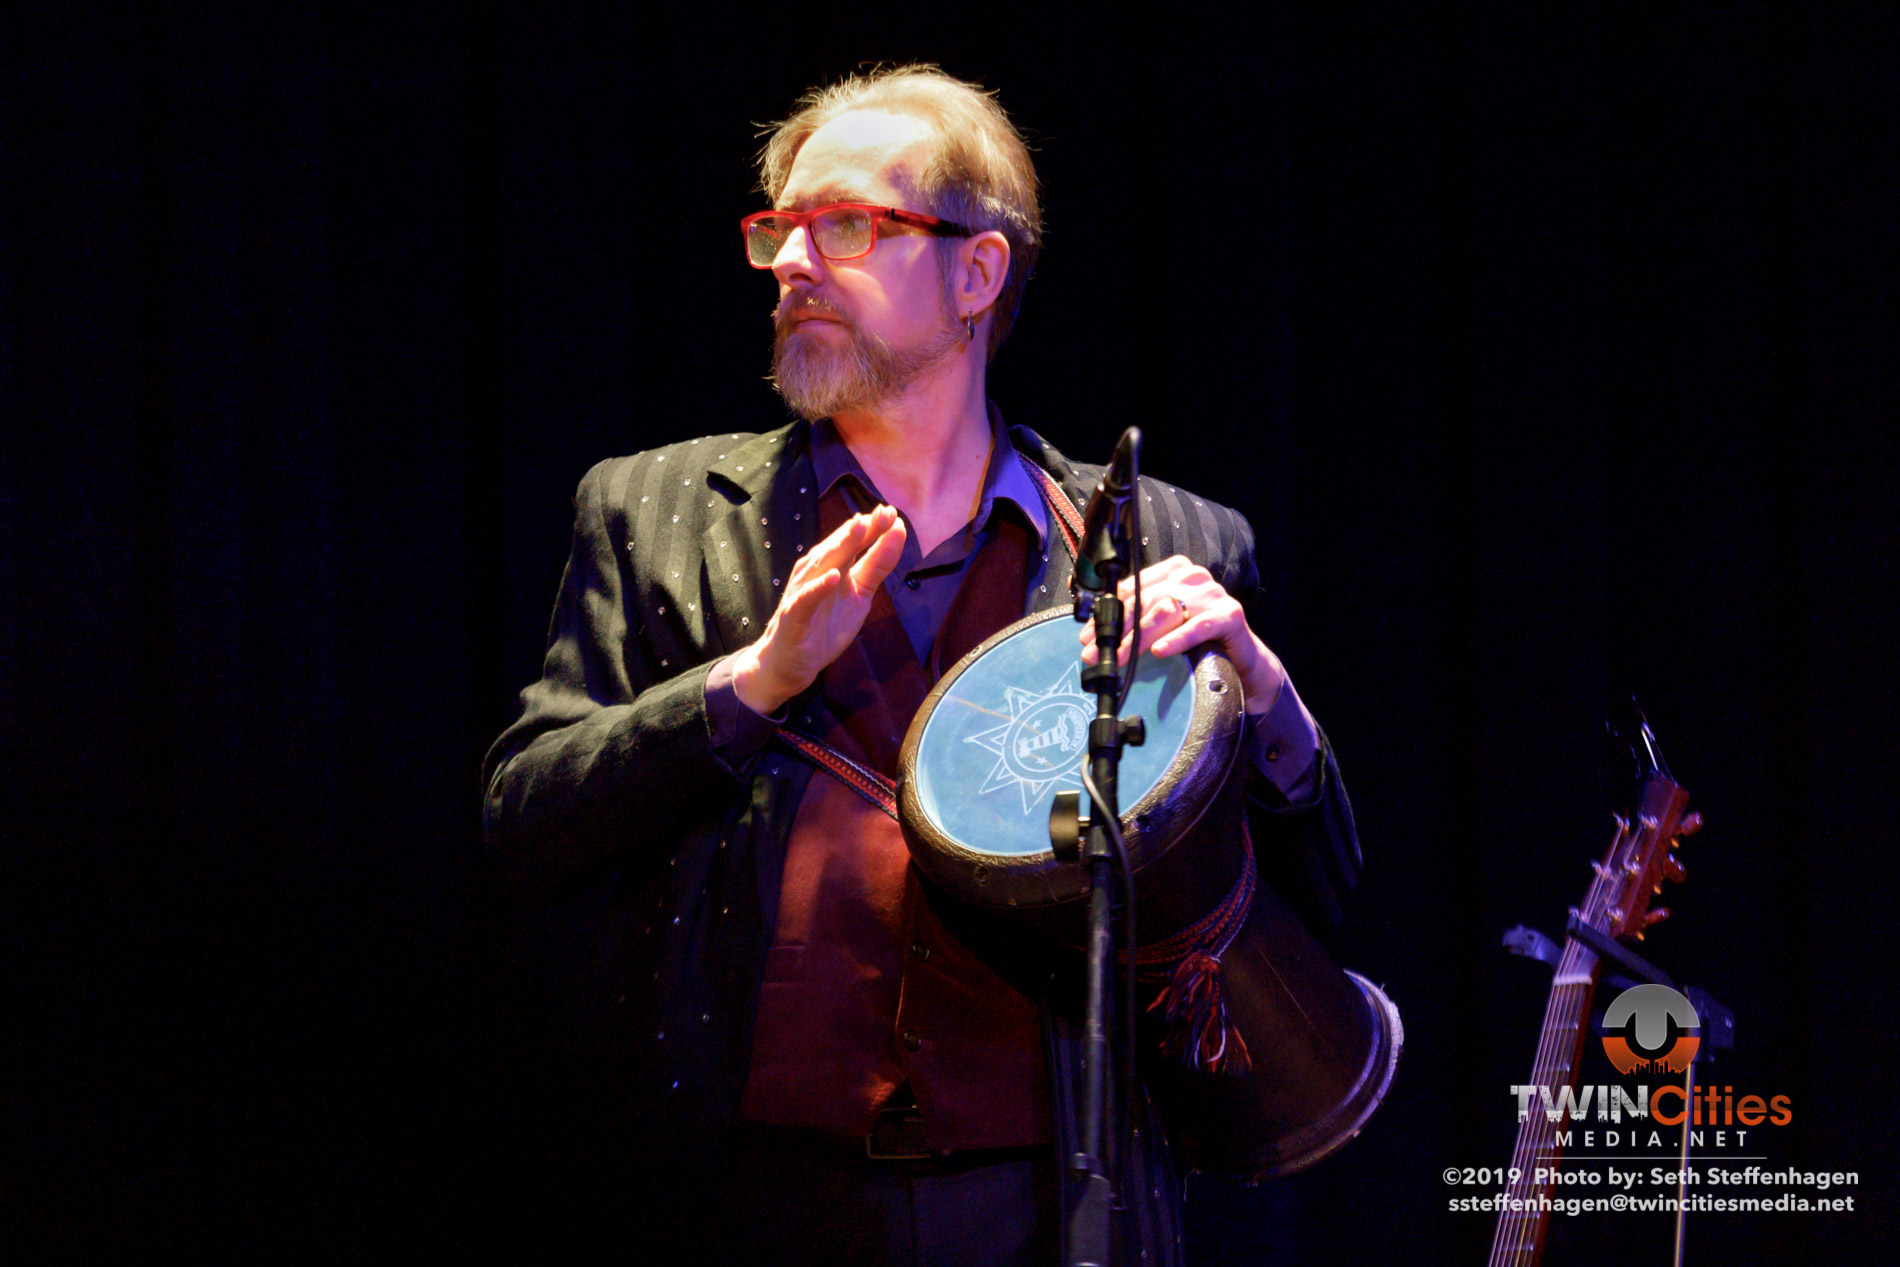 March 15, 2019 - Minneapolis, Minnesota, United States -  Orkestar Bez Ime live in concert at the Cedar Cultural Center opening for MarchFourth.  (Photo by Seth Steffenhagen/Steffenhagen Photography)